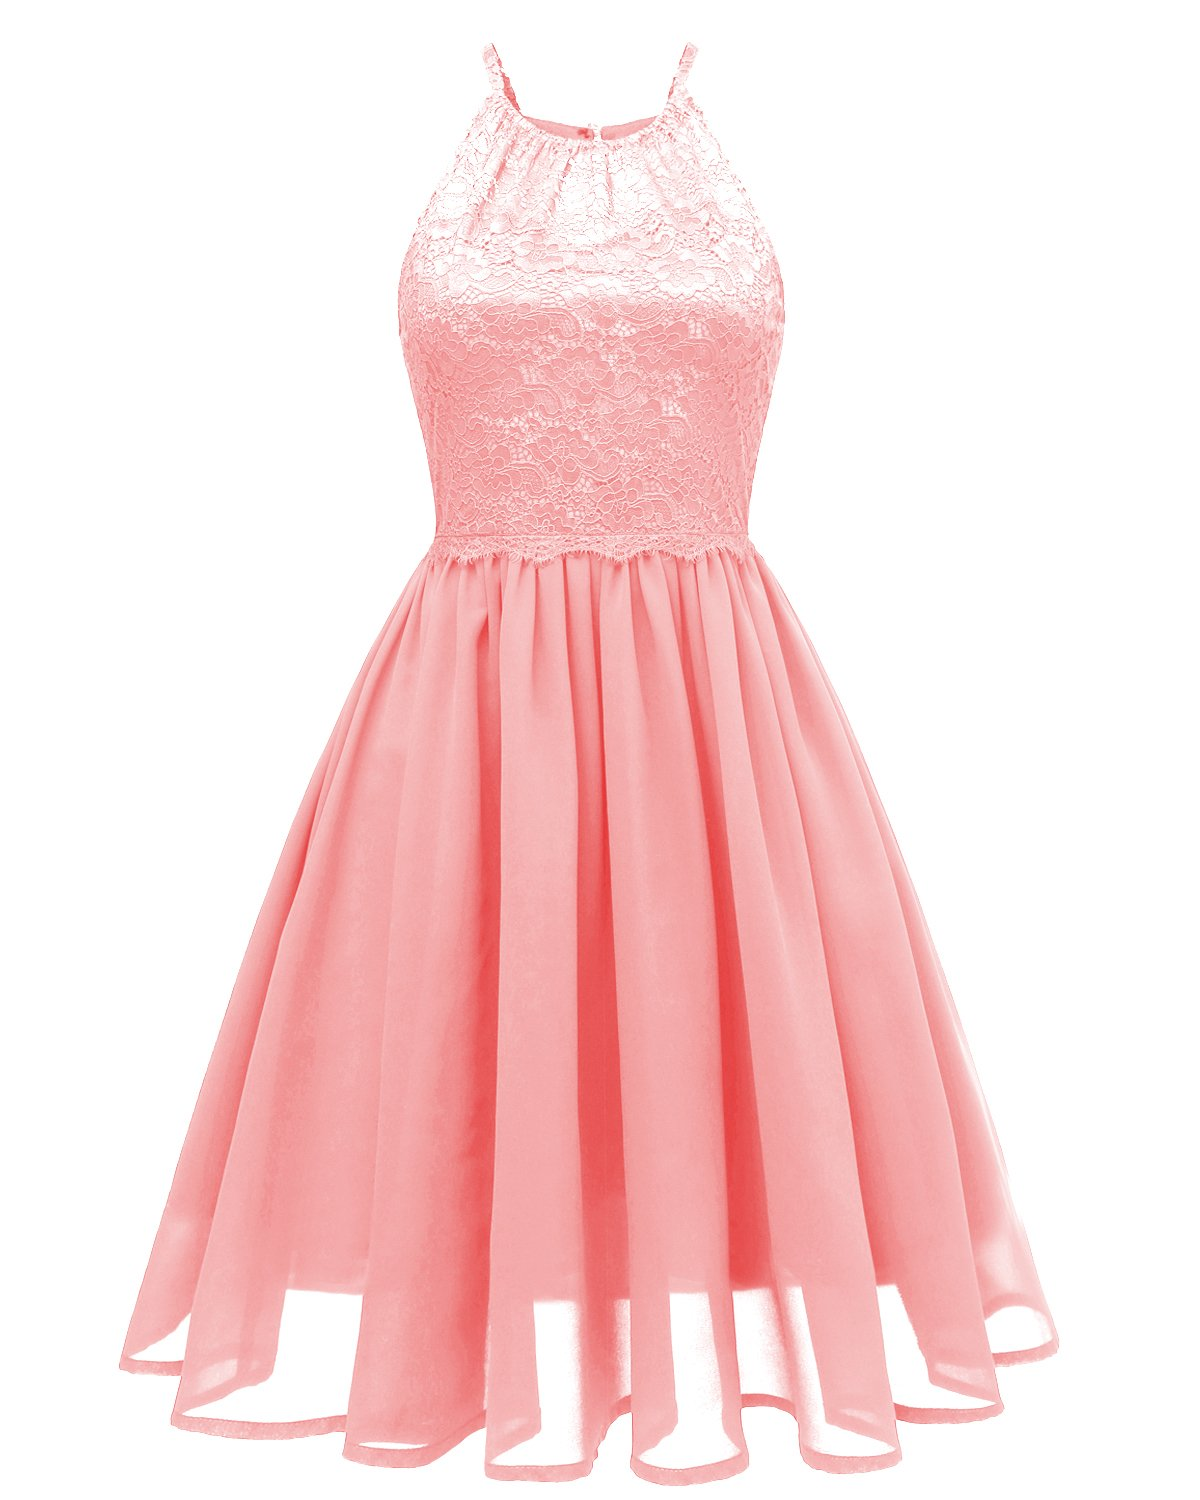 Sunvary Prom Cocktail Dresses Short Lace Chiffon Bridesmaid Open Back Dress for 2018 Graduation Daily Summer Wear-S-Pink